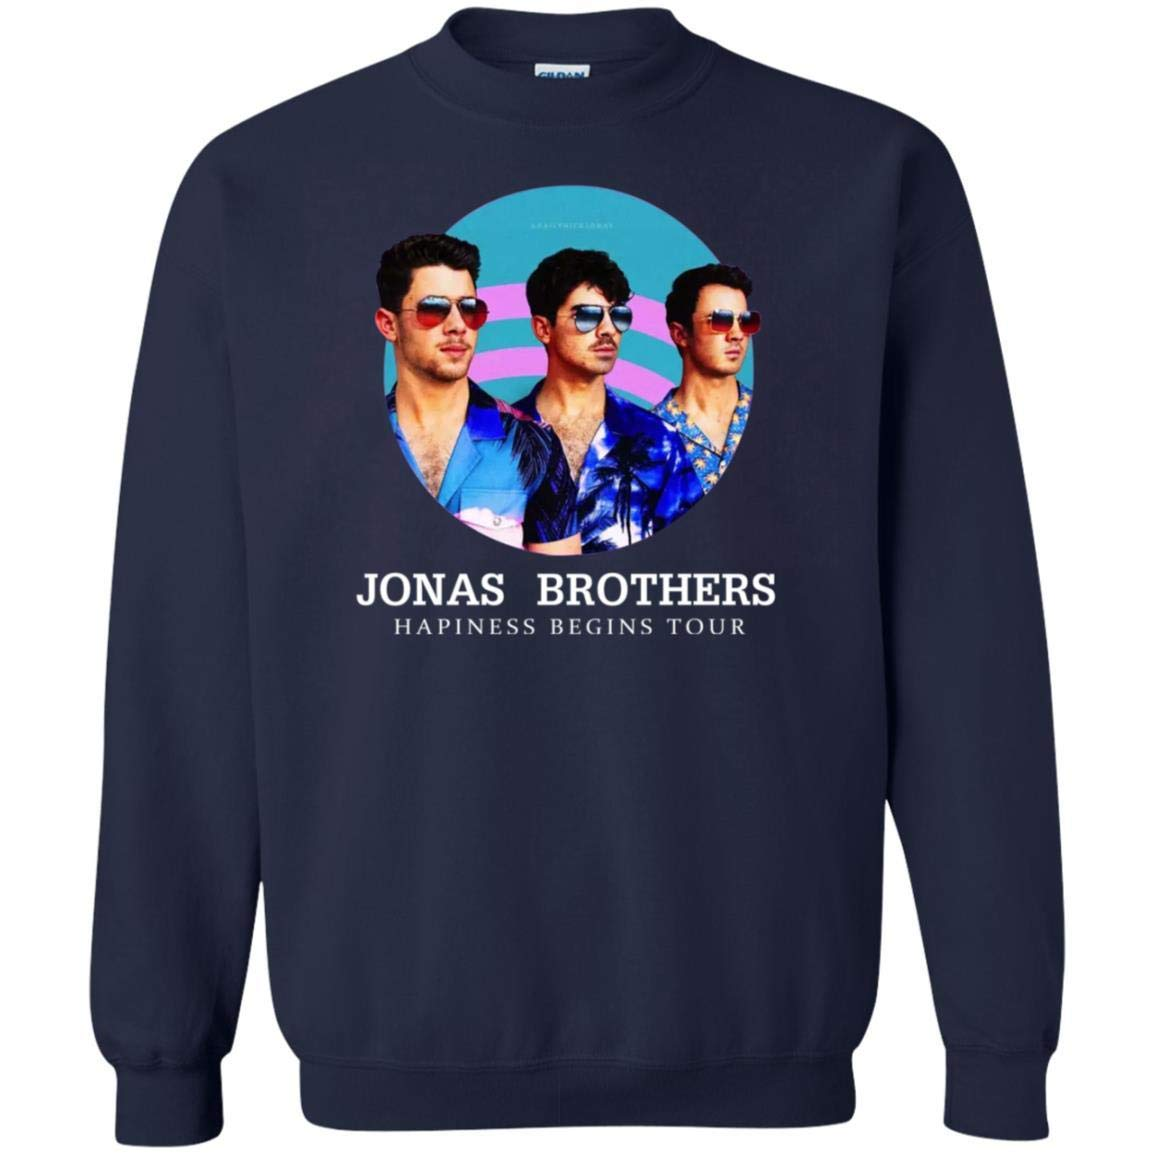 Jonas Brothers Happiness Tour 2019 Music Tour Concert Gift Unisex Shirts